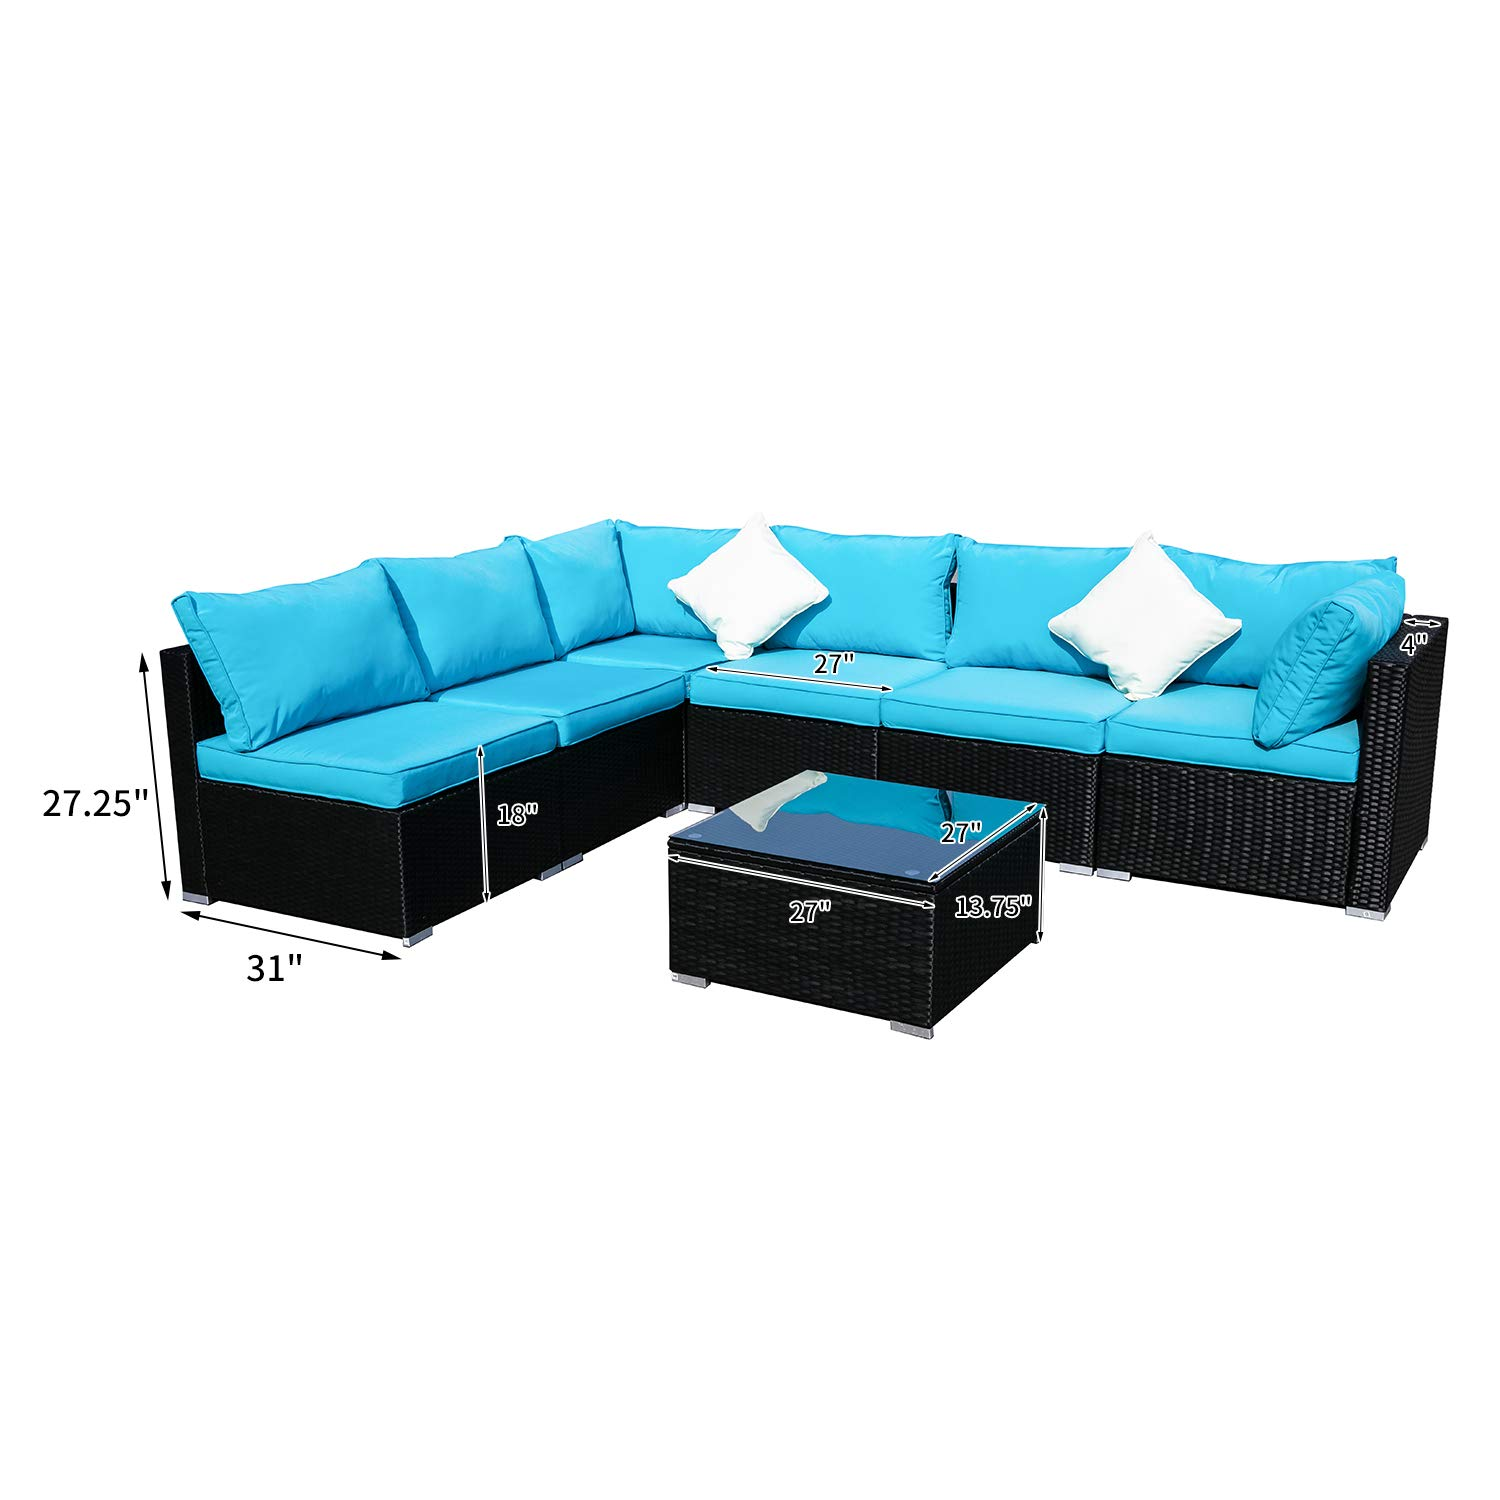 Outdoor Basic Patio Furniture 7-Pieces PE Rattan Wicker Sectional Blue Cushioned Sofa Sets with 2 Pillows